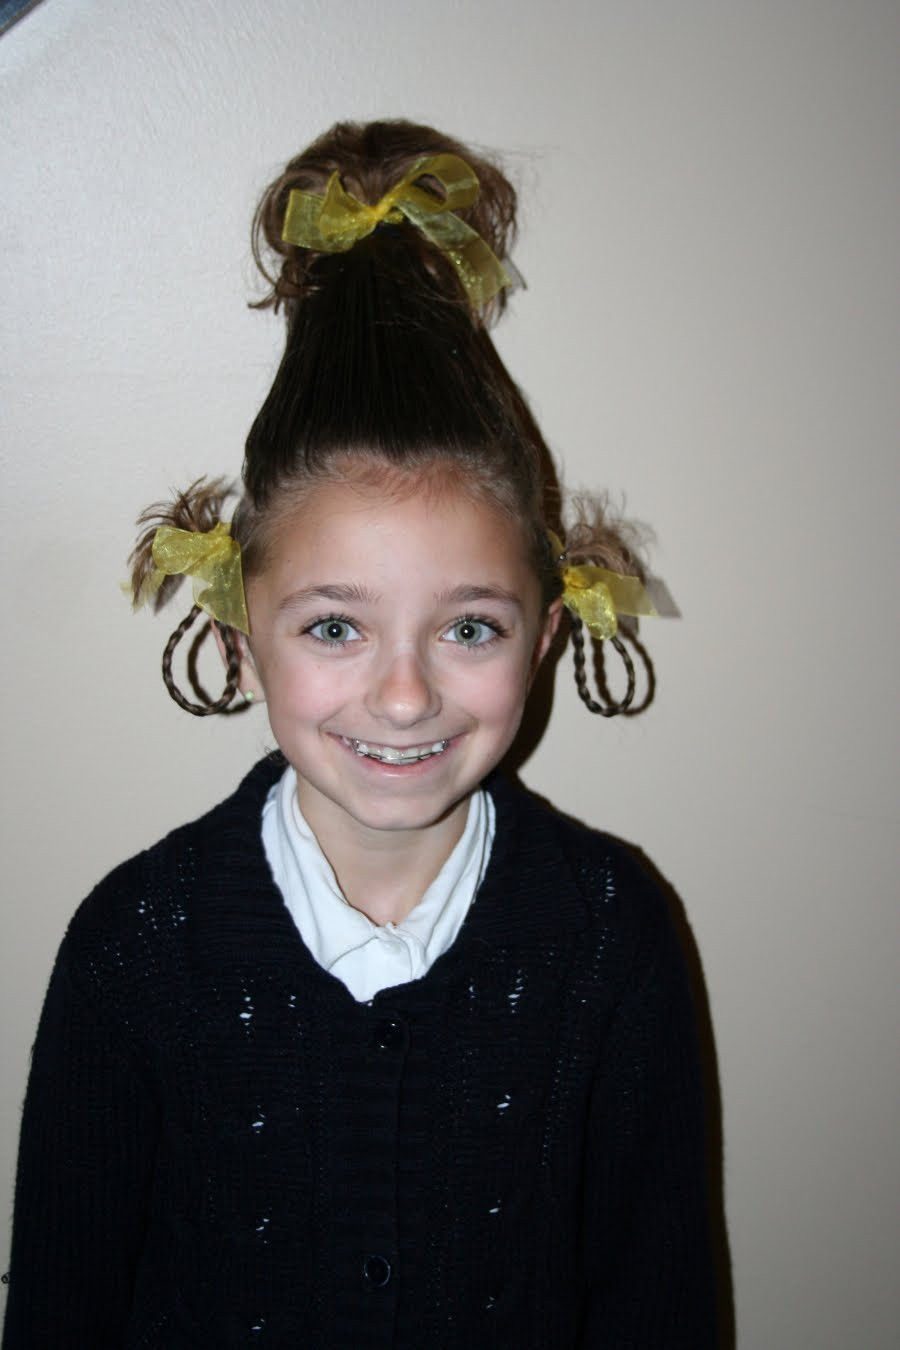 Best ideas about Crazy Girls Haircuts . Save or Pin Dare to Wear These 20 Crazy Hairstyles MagMent Now.